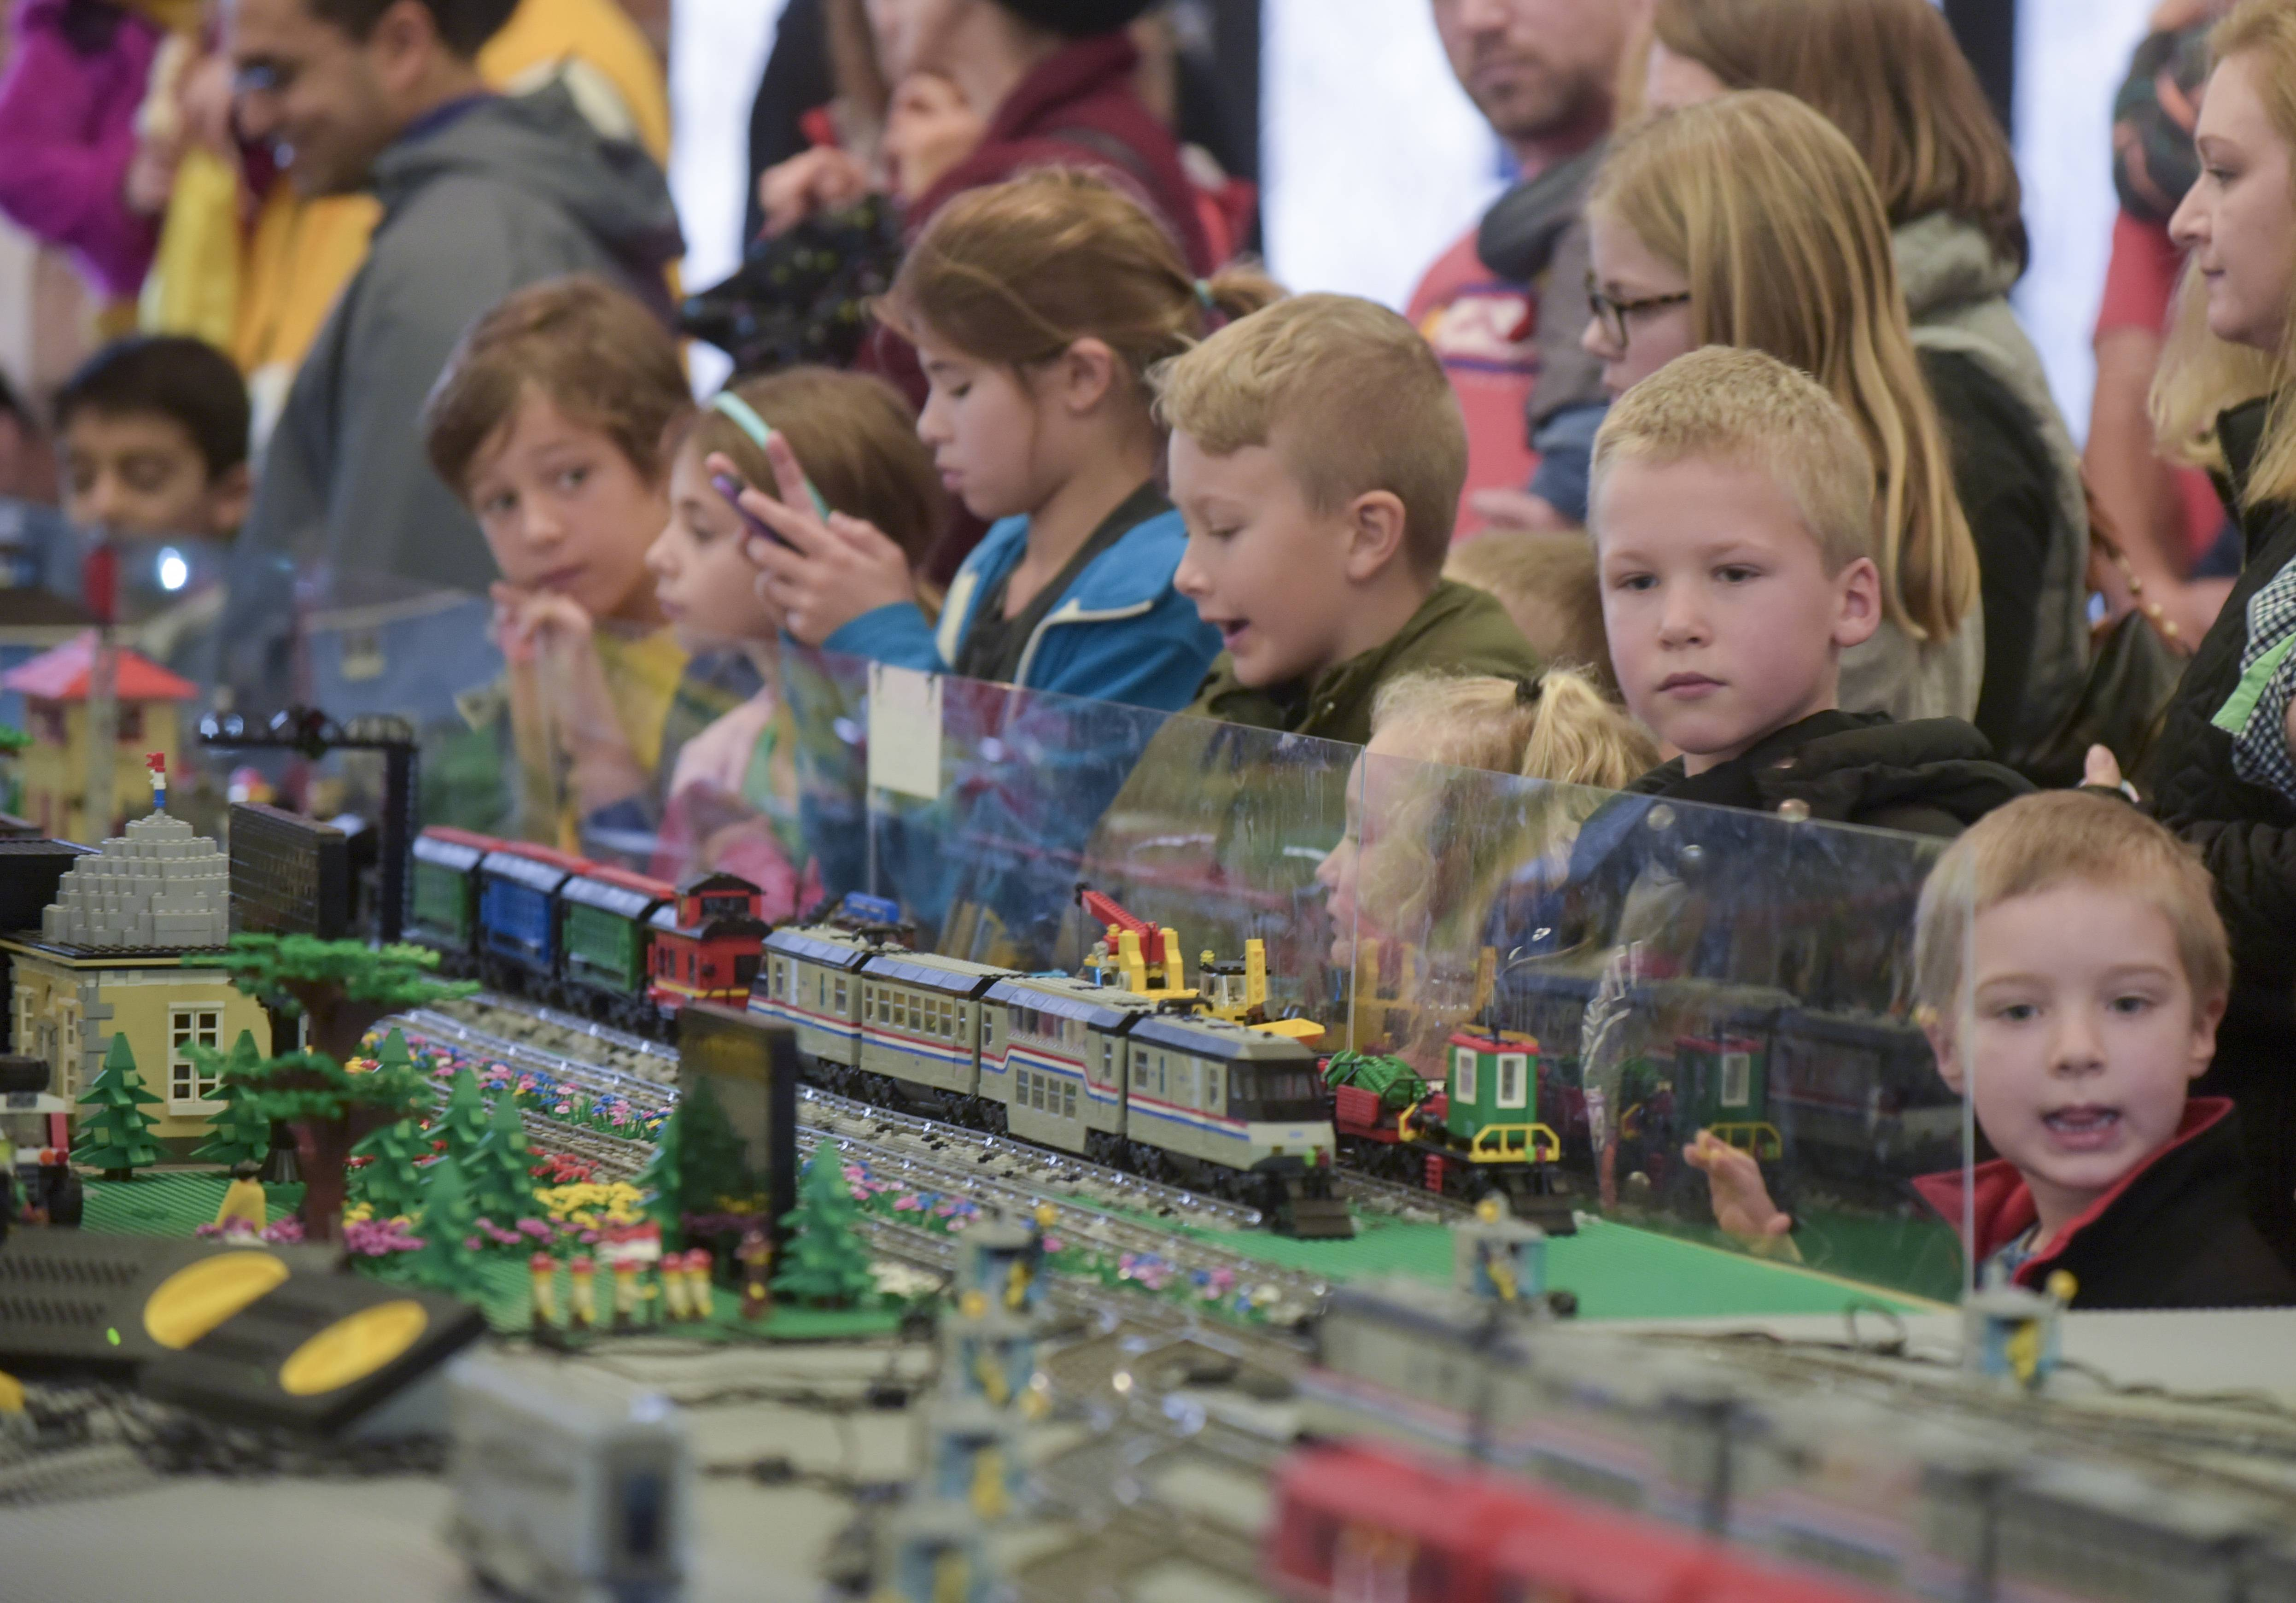 The 14th annual Lego Train Show at Cantigny Park was packed Sunday with Lego fans viewing the creations of the Northern Illinois Lego Train Club.